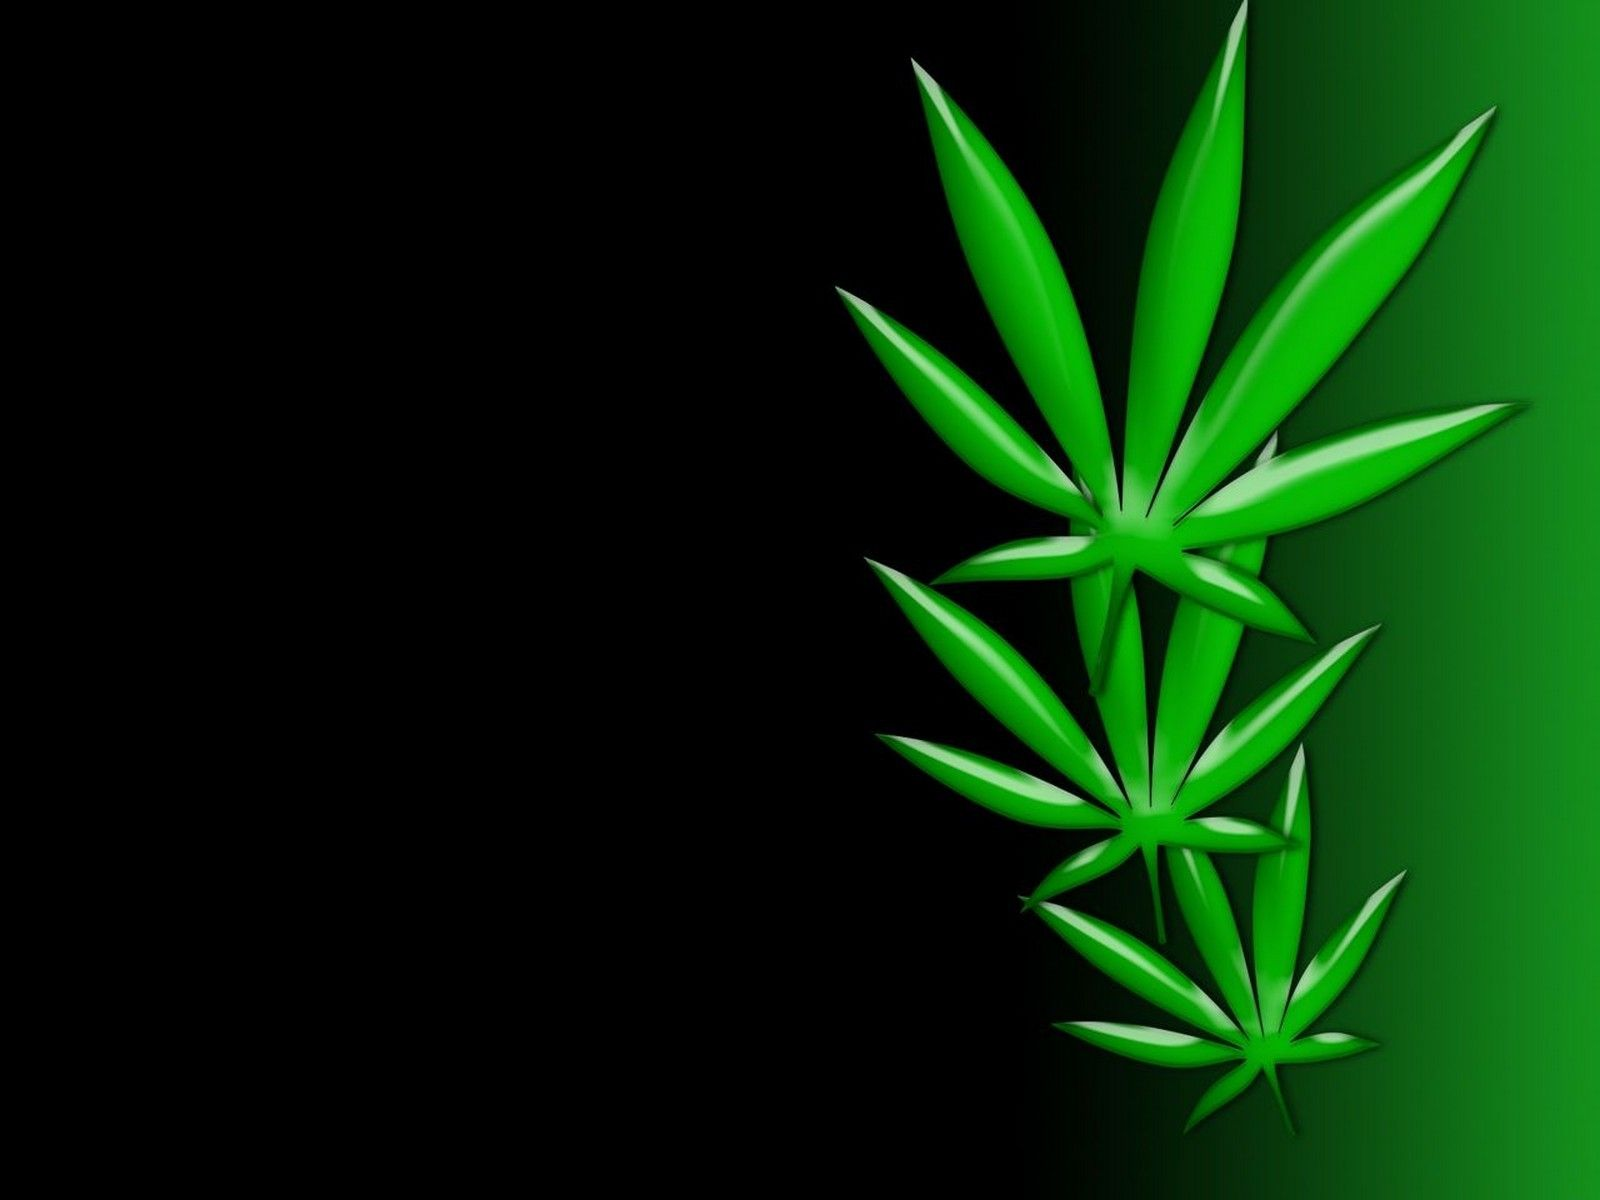 Pin on Weed Wallpapers